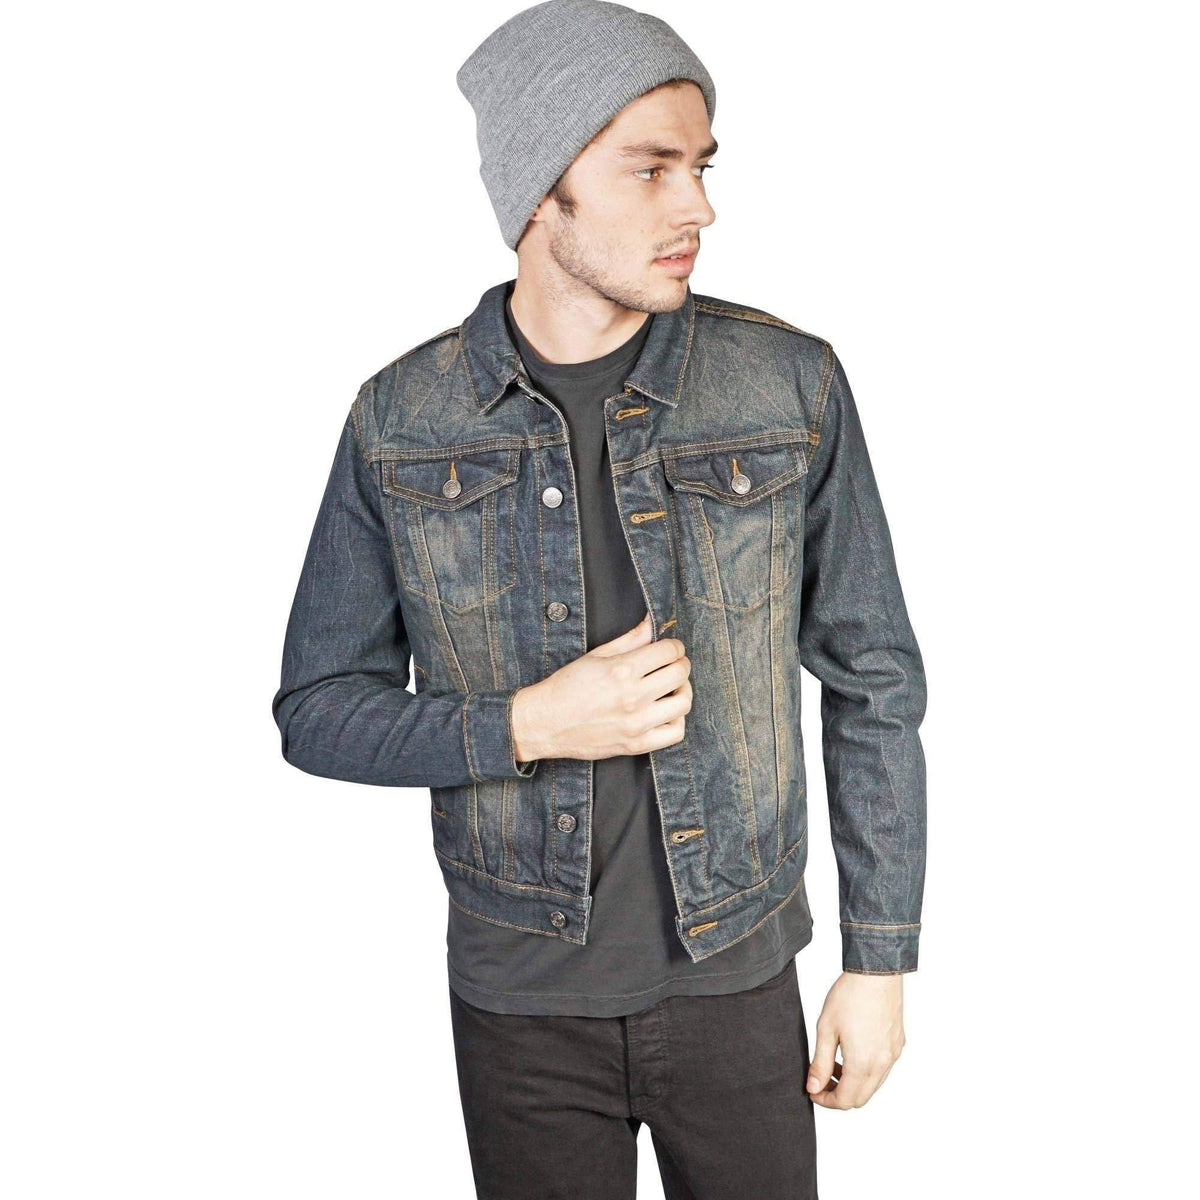 Lip Service Mens Vintage Washed Slim Fit Denim Trucker Jacket-Salemonster